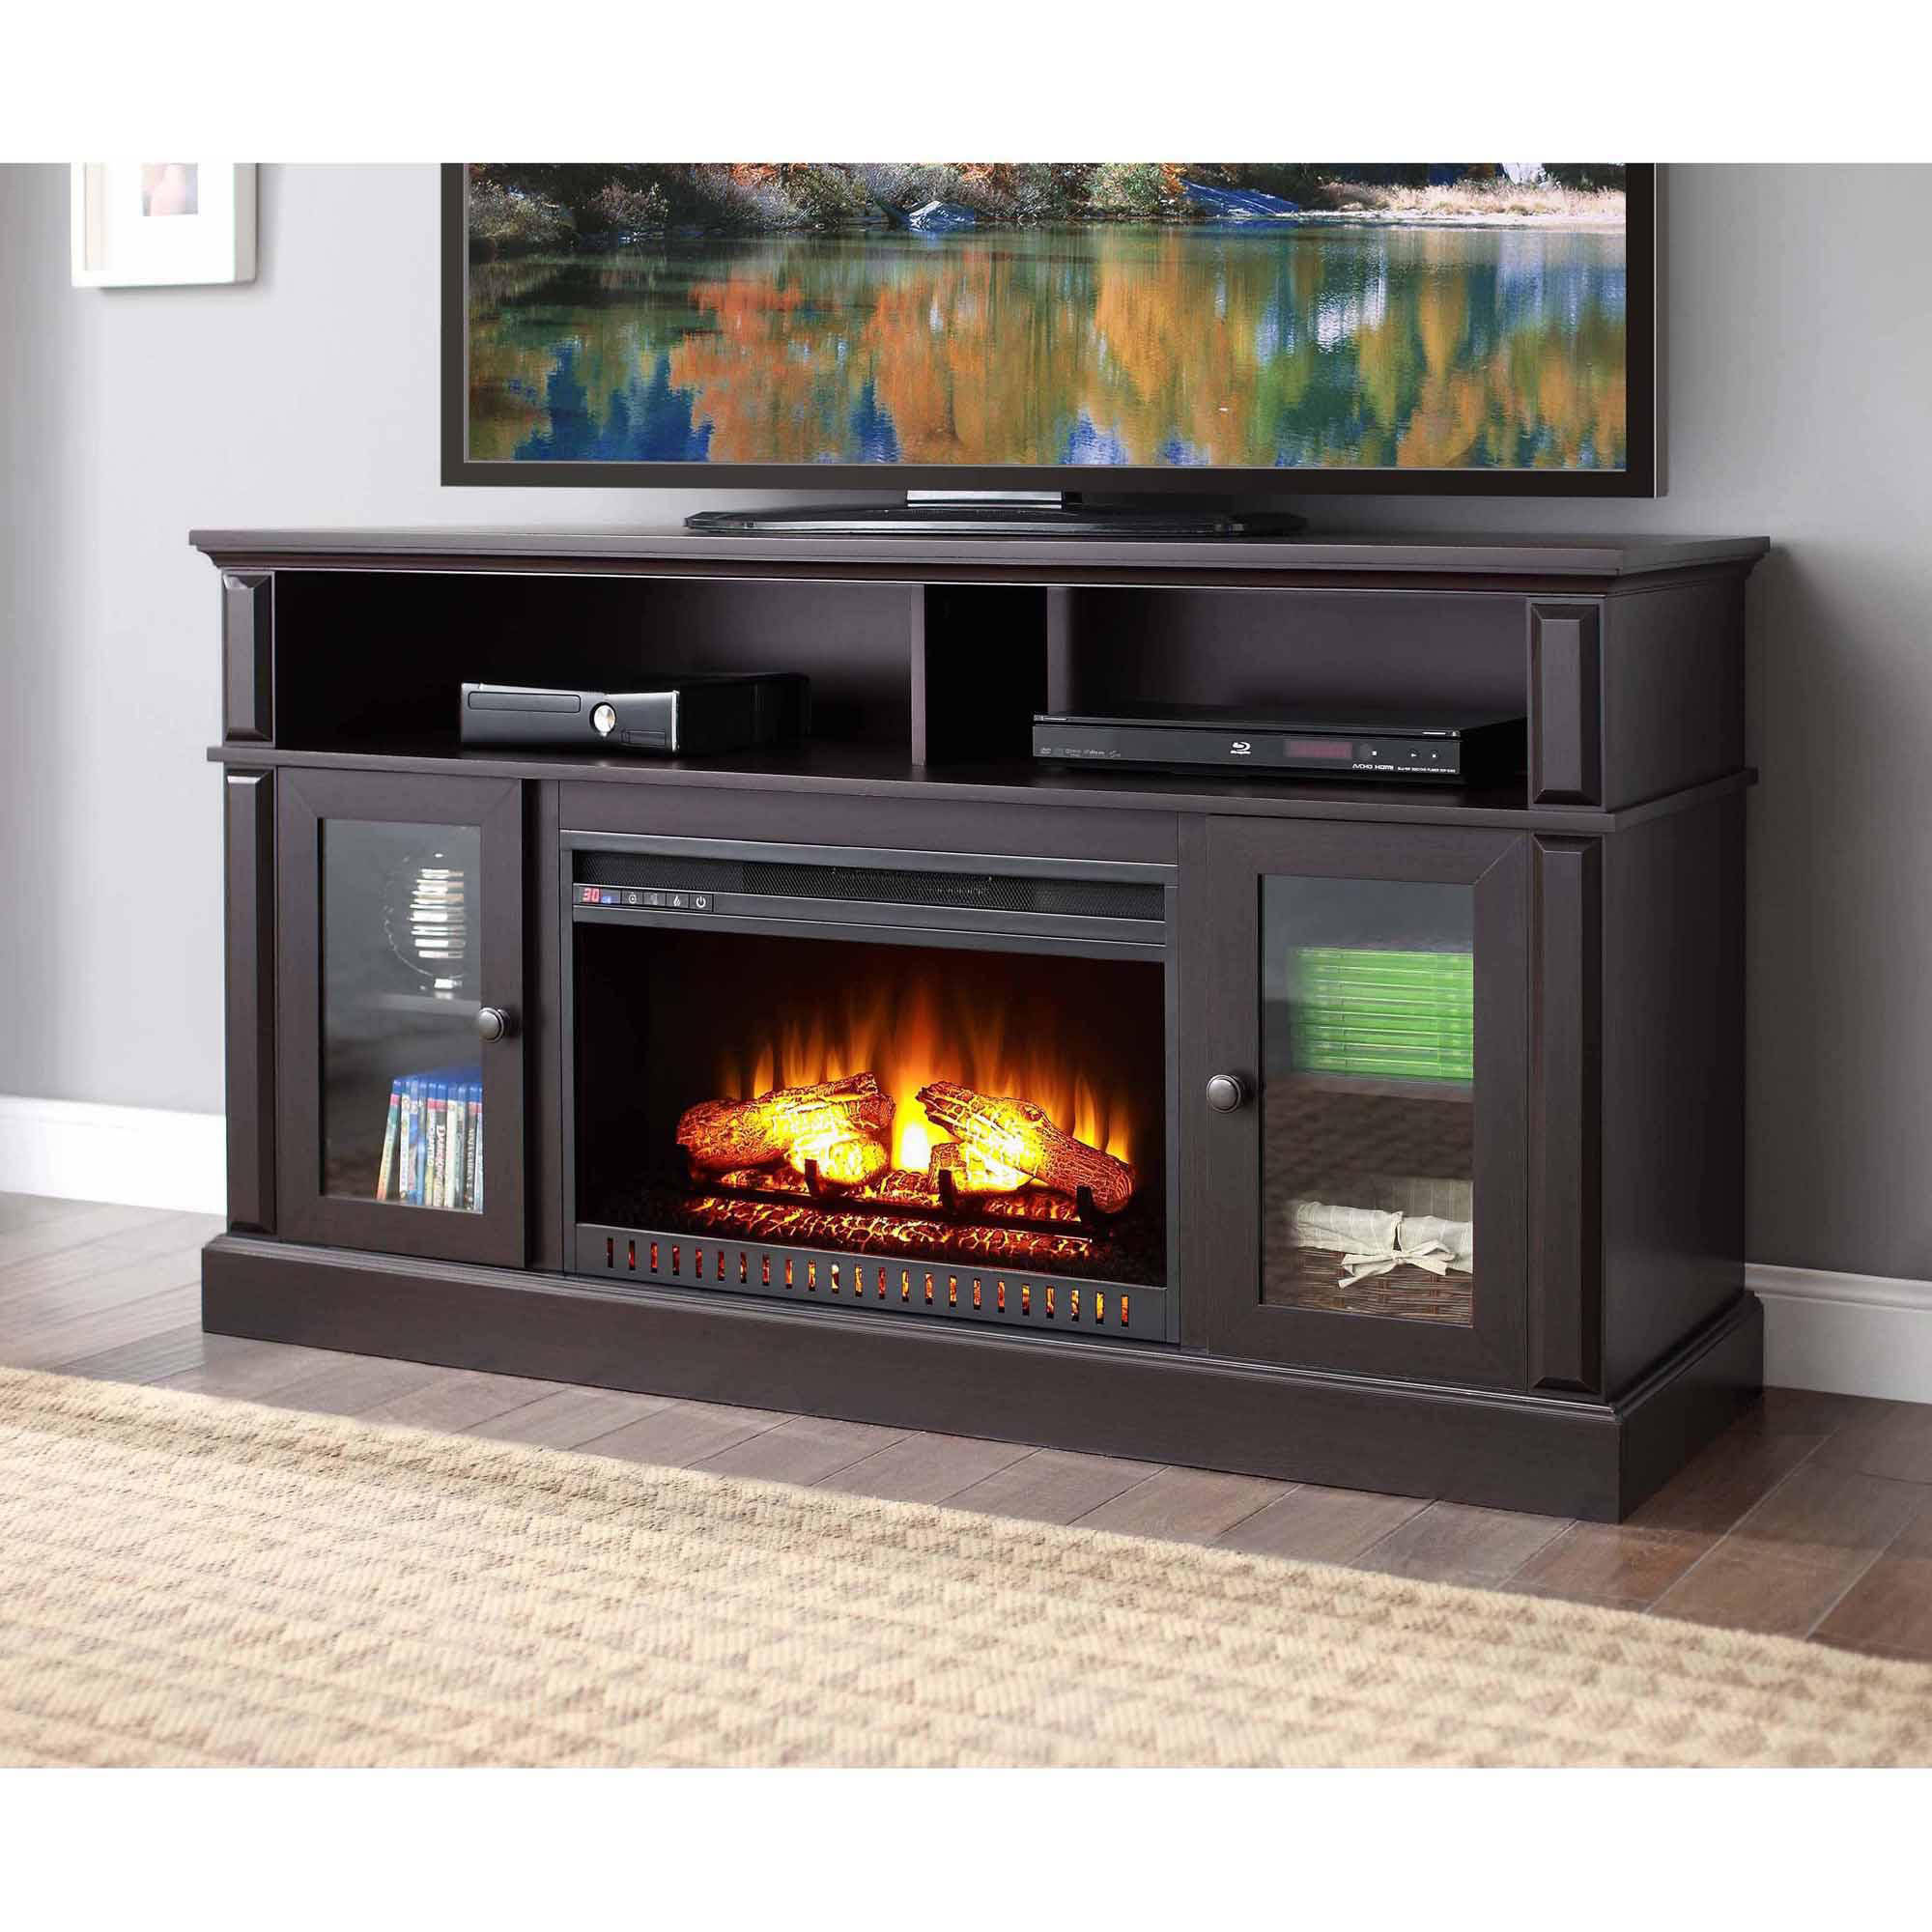 tv antique inspirations size electric solution electricace image corner with for tvnd full of fireplace fresno white stand discount oak